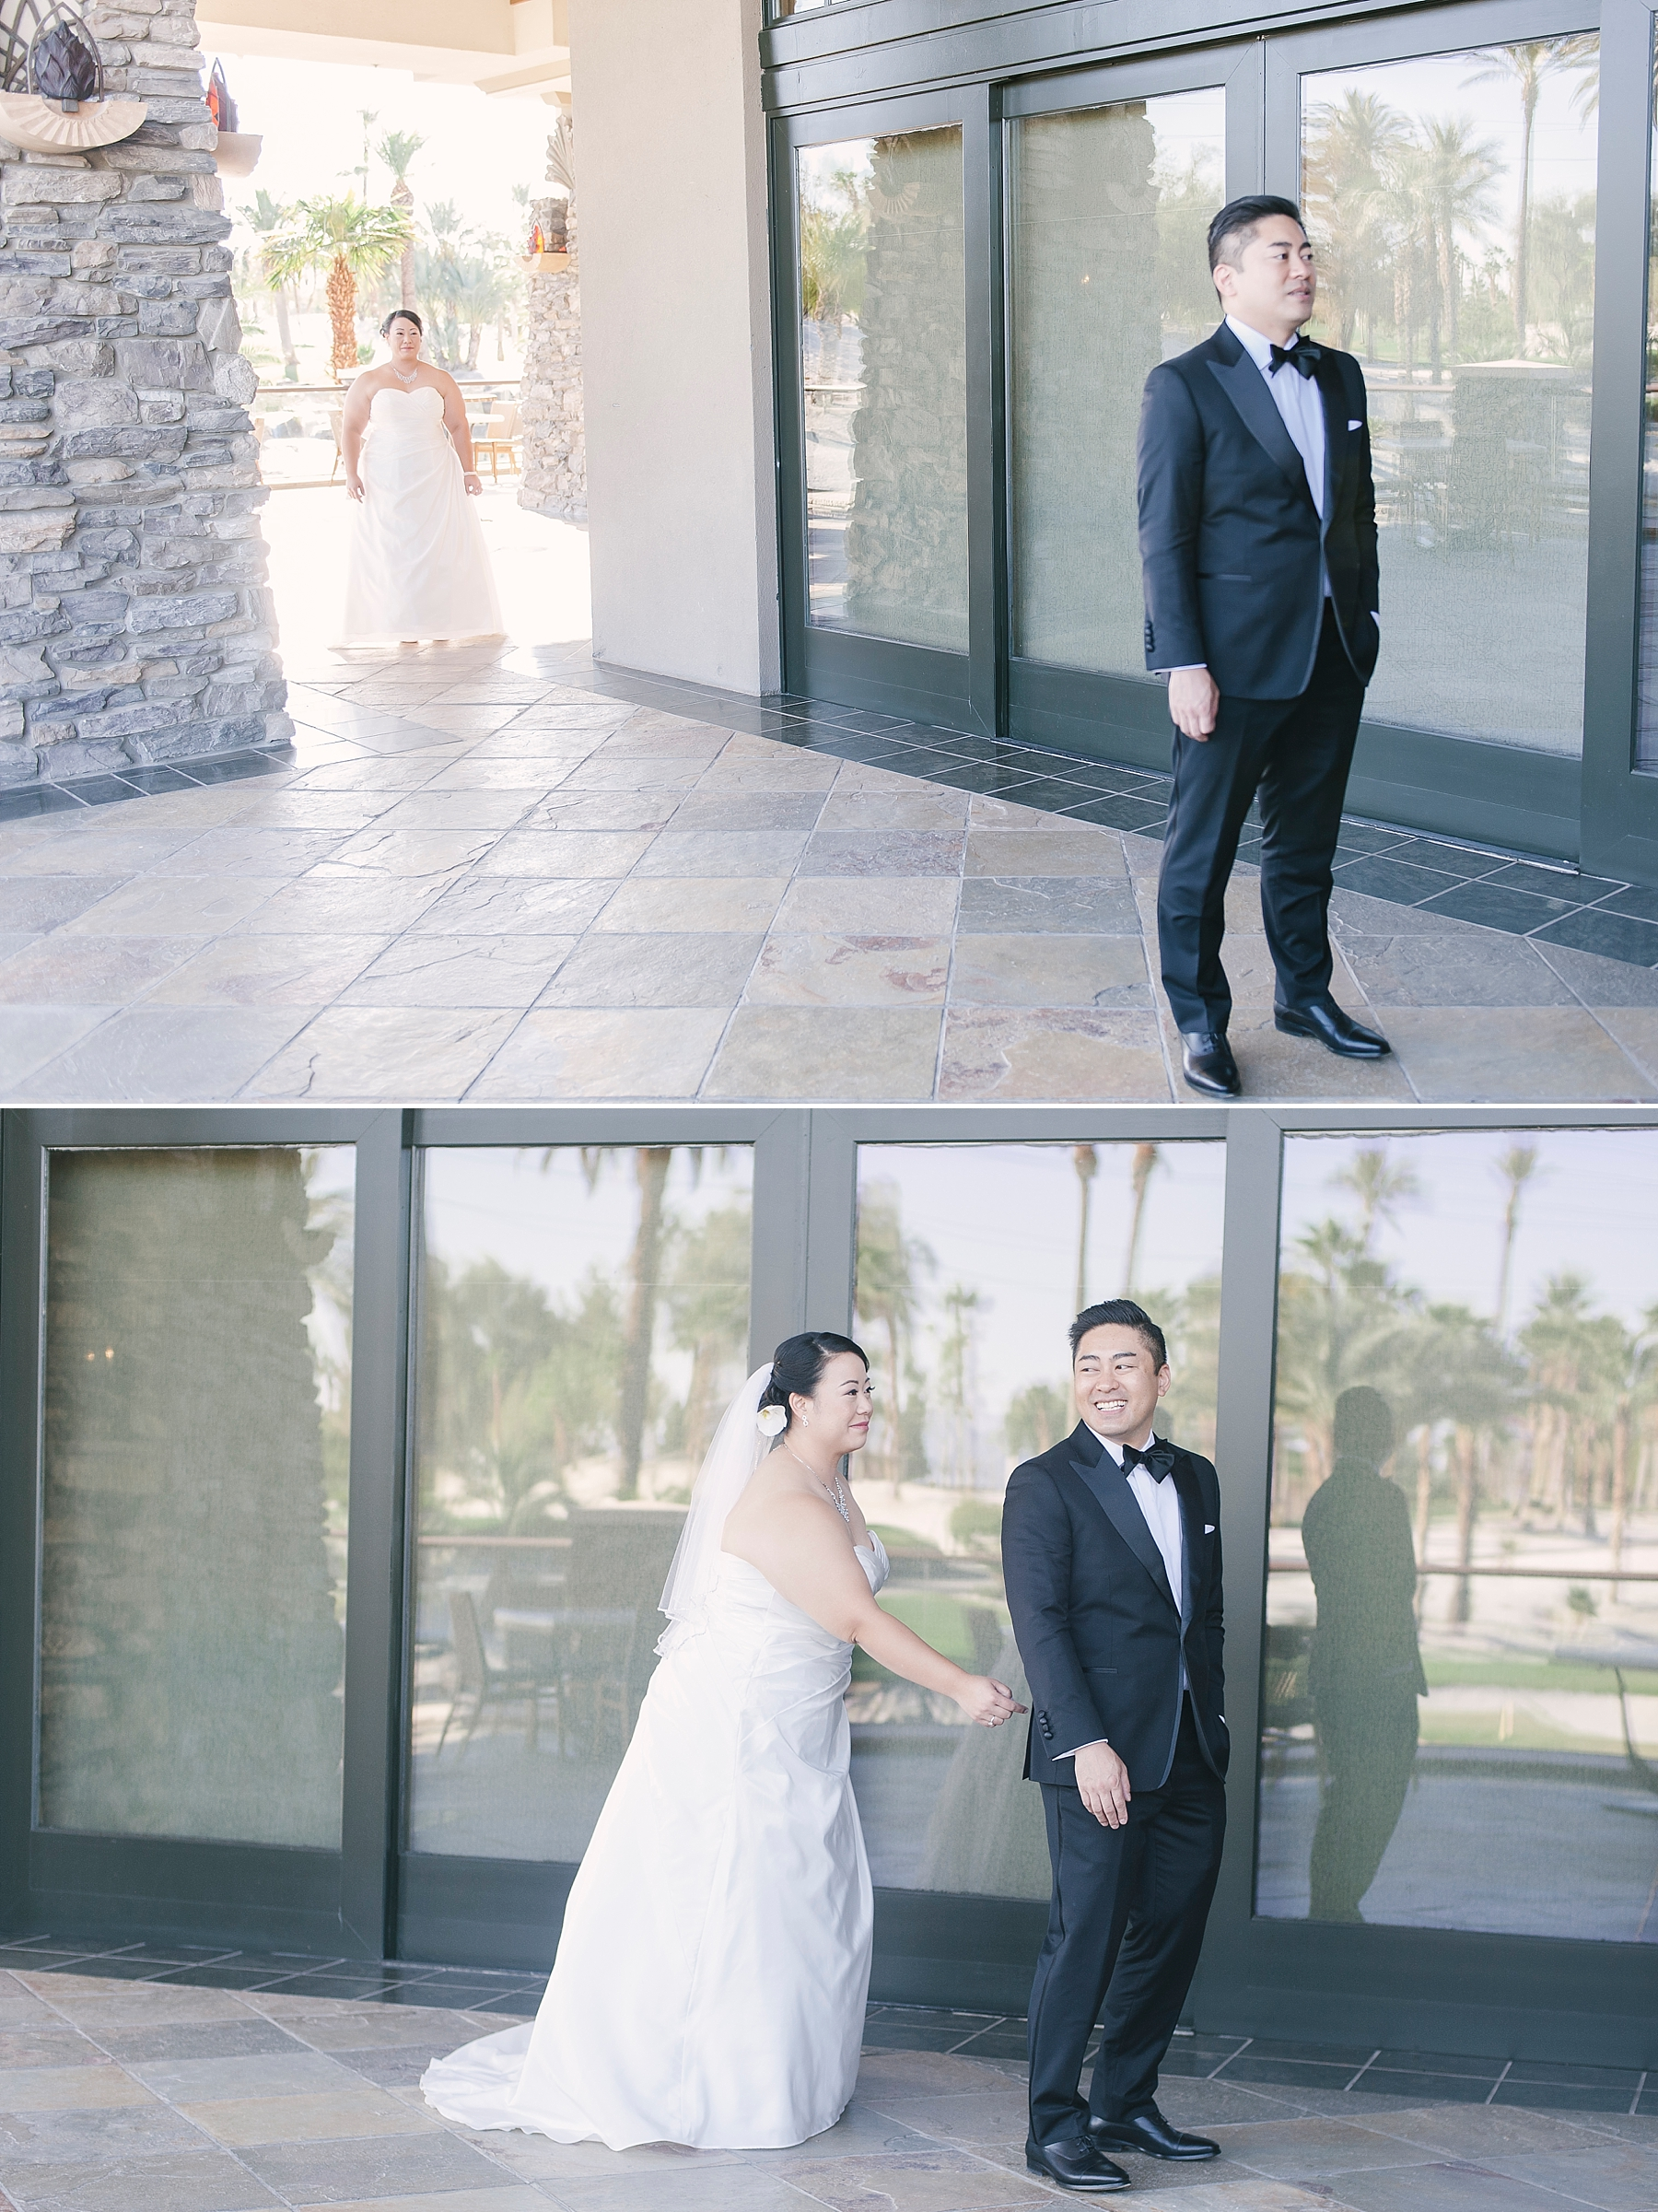 Cili_Golf_Club_Las_vegas_wedding_photography-10.jpg